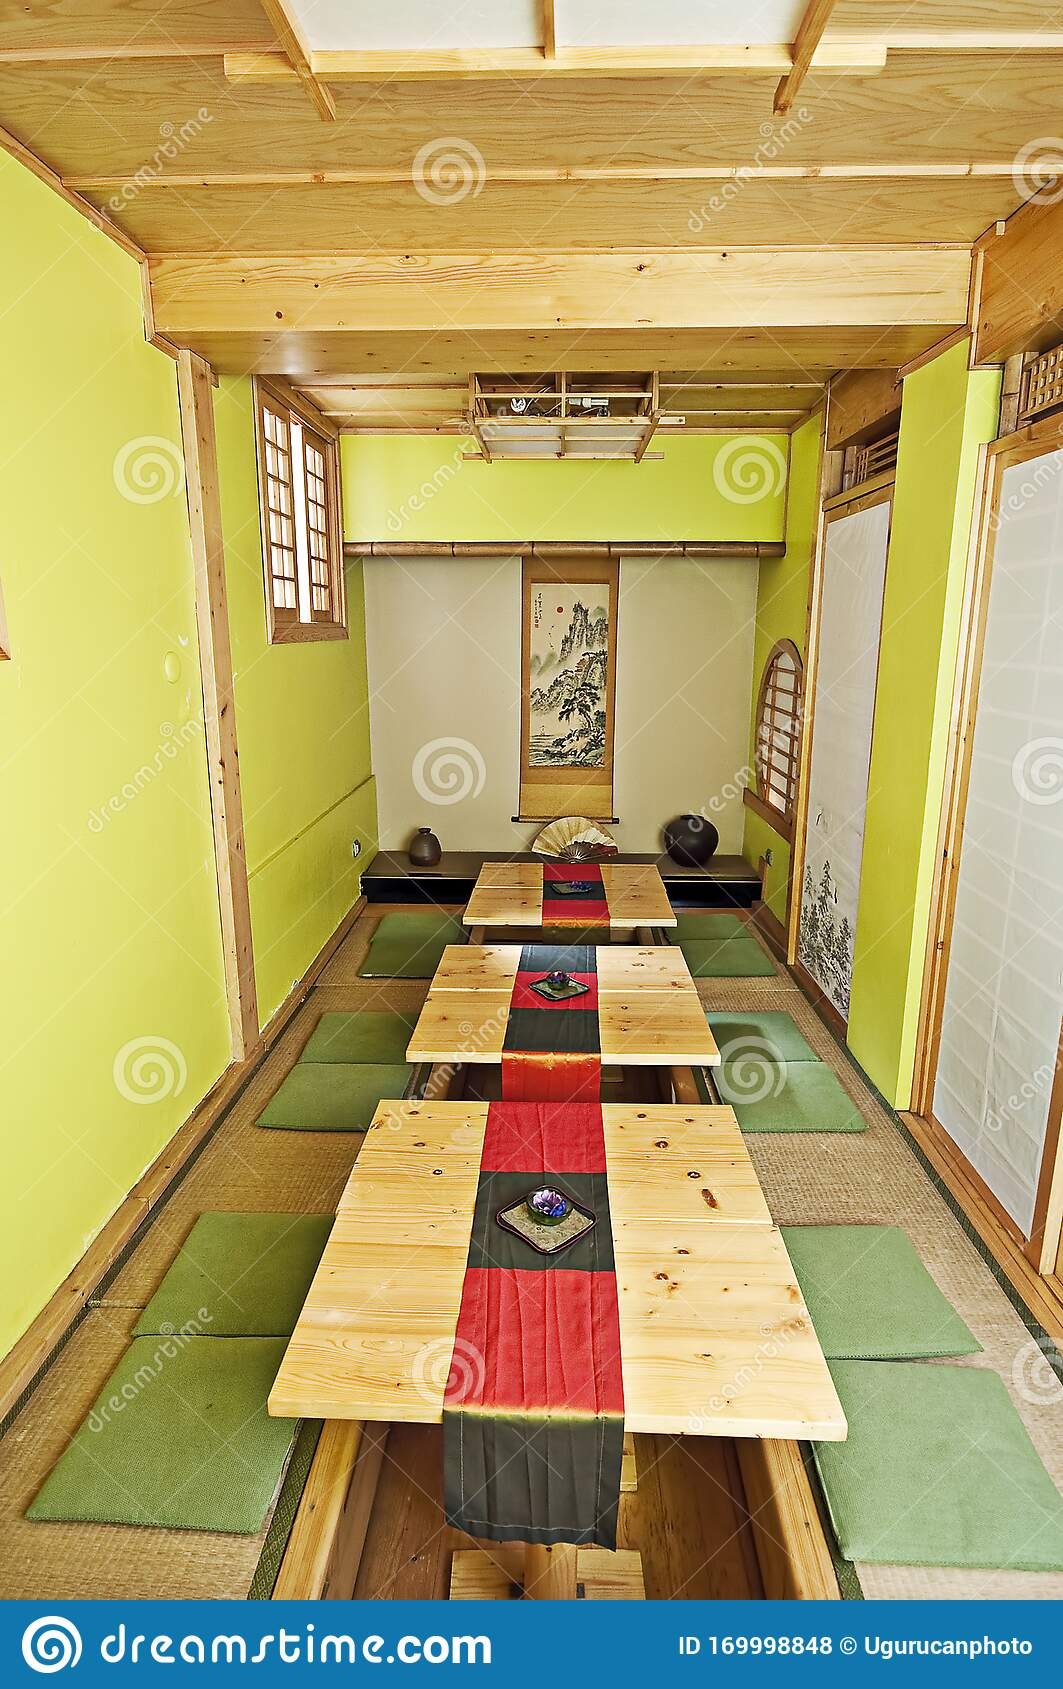 Traditional Japanese Restaurant Interior And Design Editorial Stock Photo Image Of Bamboo Design 169998848